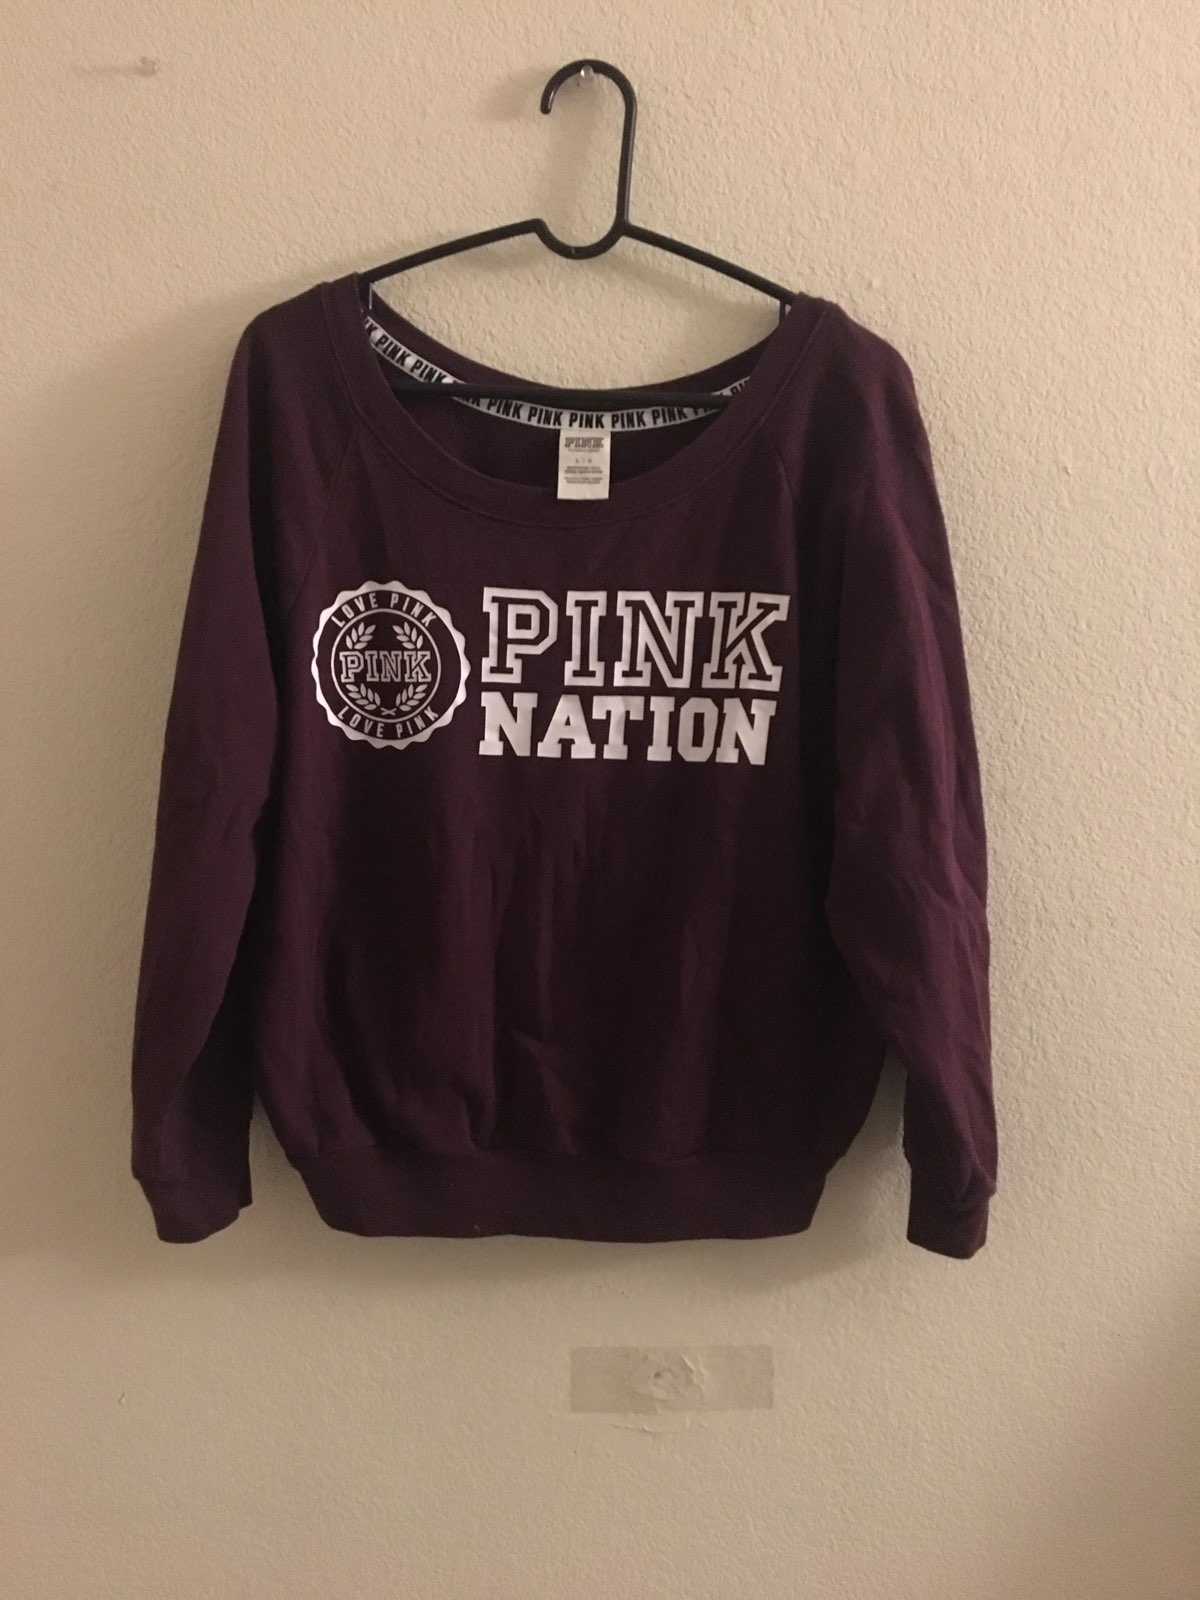 VS Pink Nation Red Sweater - Mercari: BUY & SELL THINGS YOU LOVE